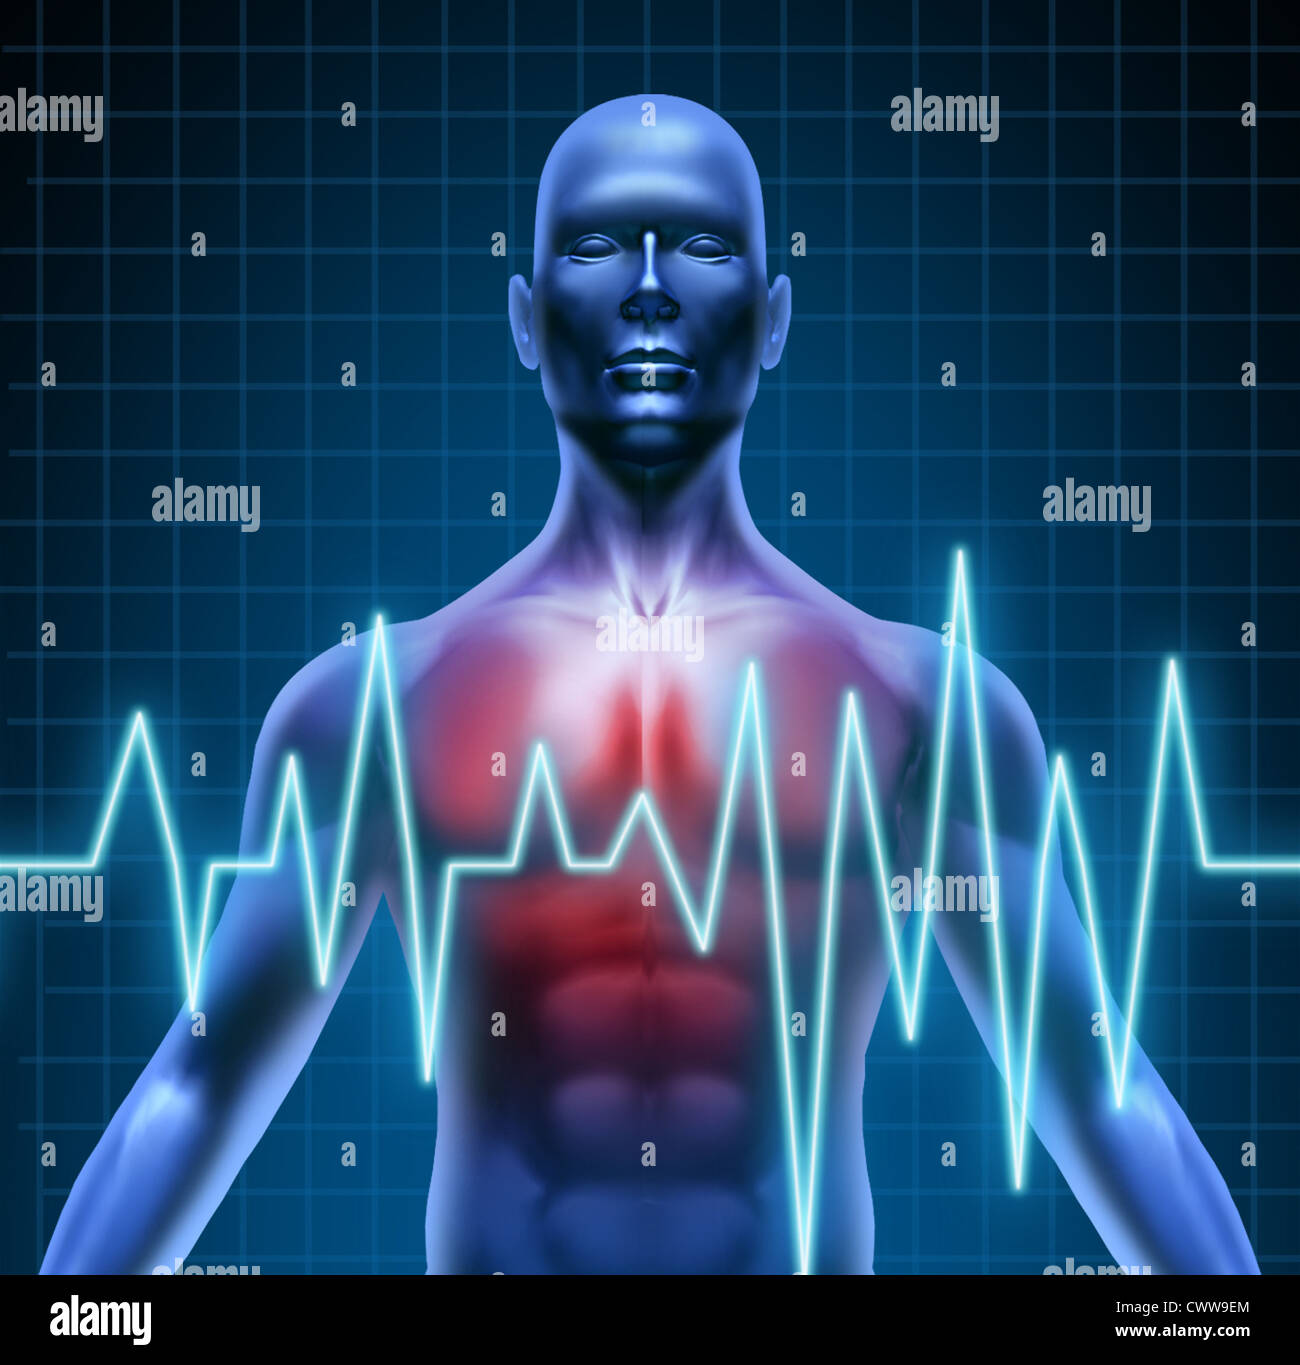 Heart and coronary disease representing the medical concept of cardiac problems stemming from human blood circulation - Stock Image